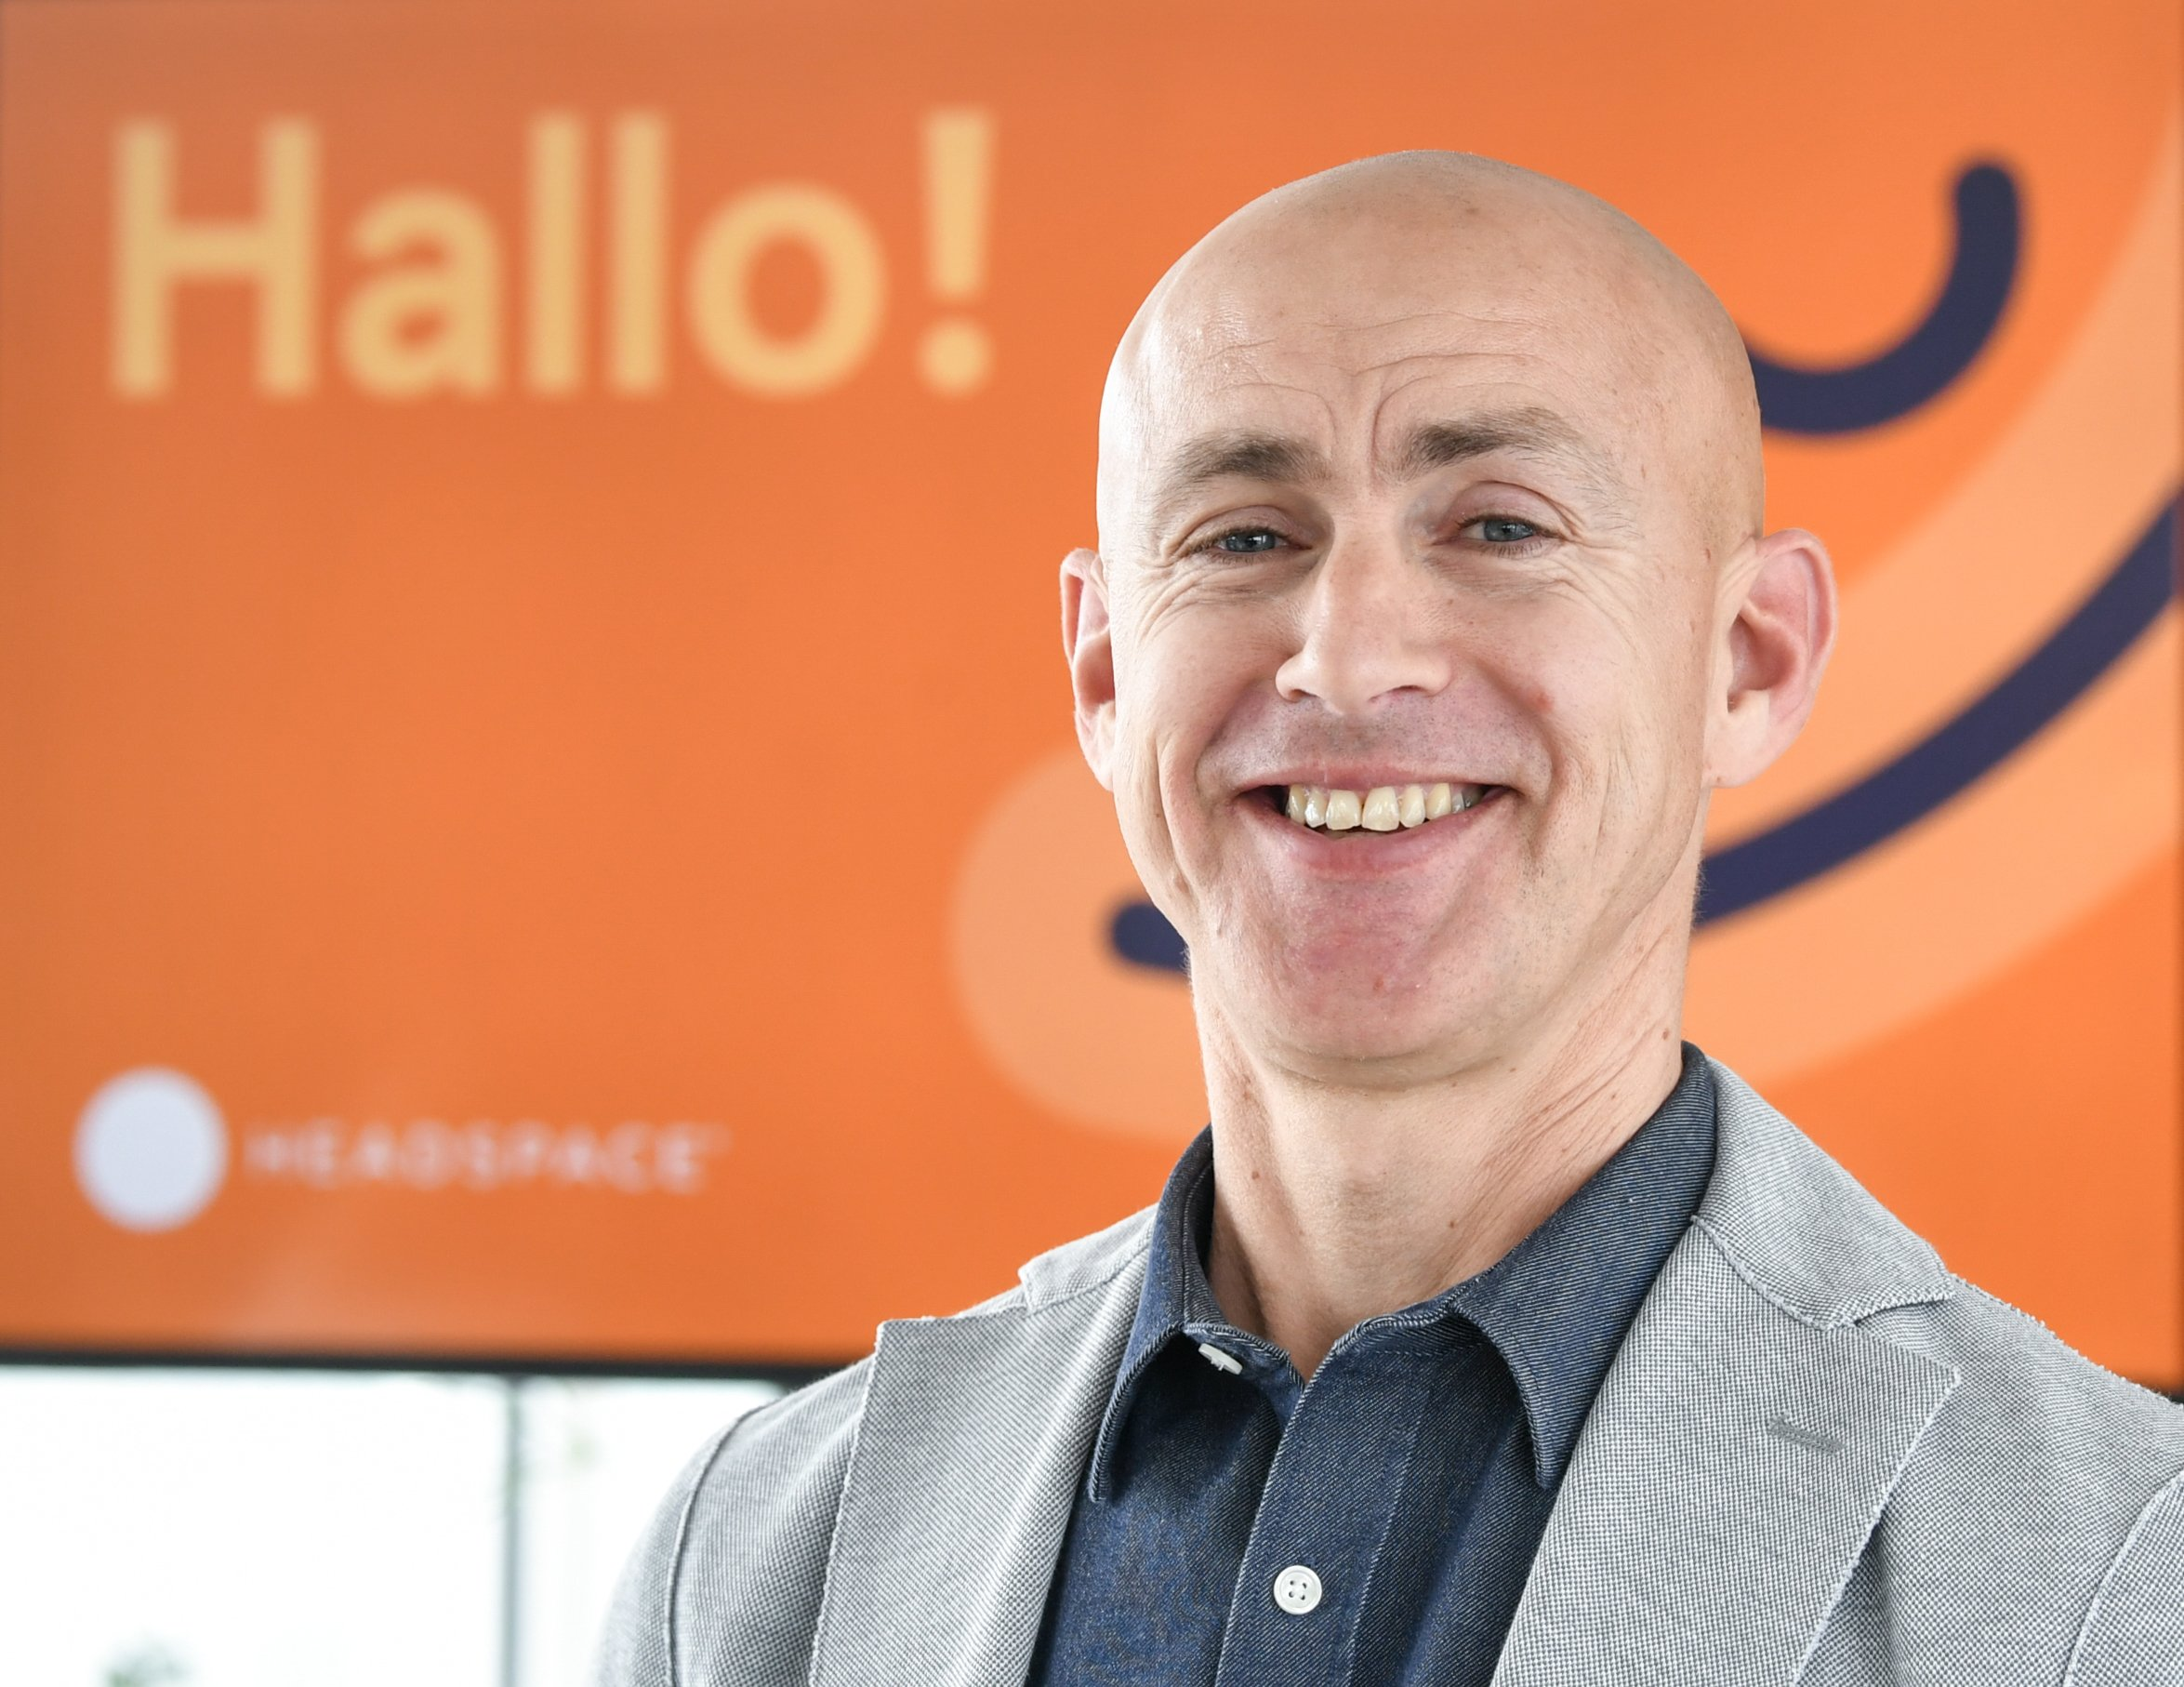 Andy Puddicombe and Rich Pierson Dish on How They Built Headspace